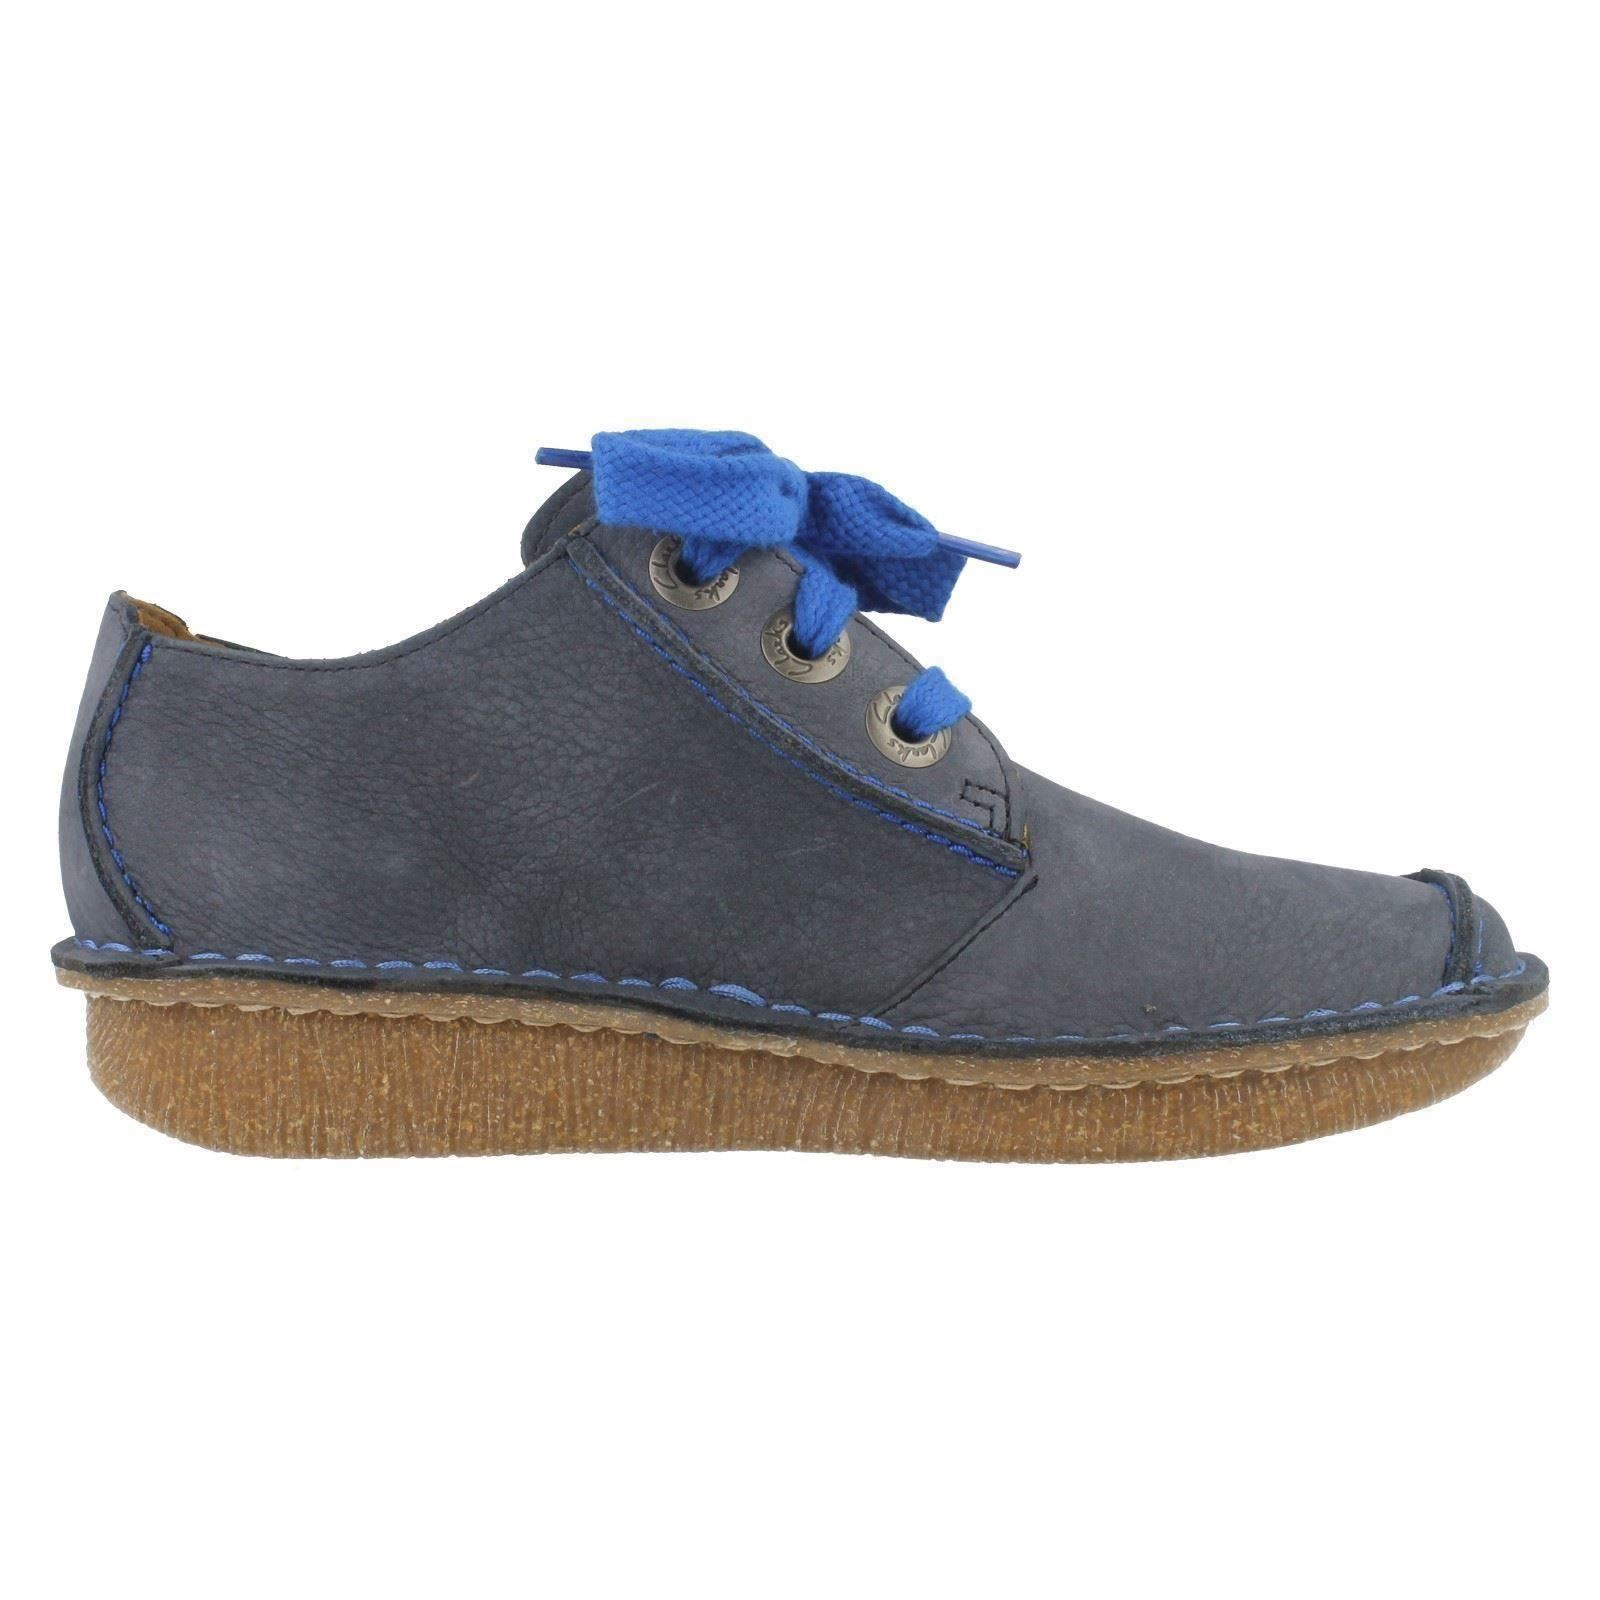 Buy Clarks Funny Dream Shoes